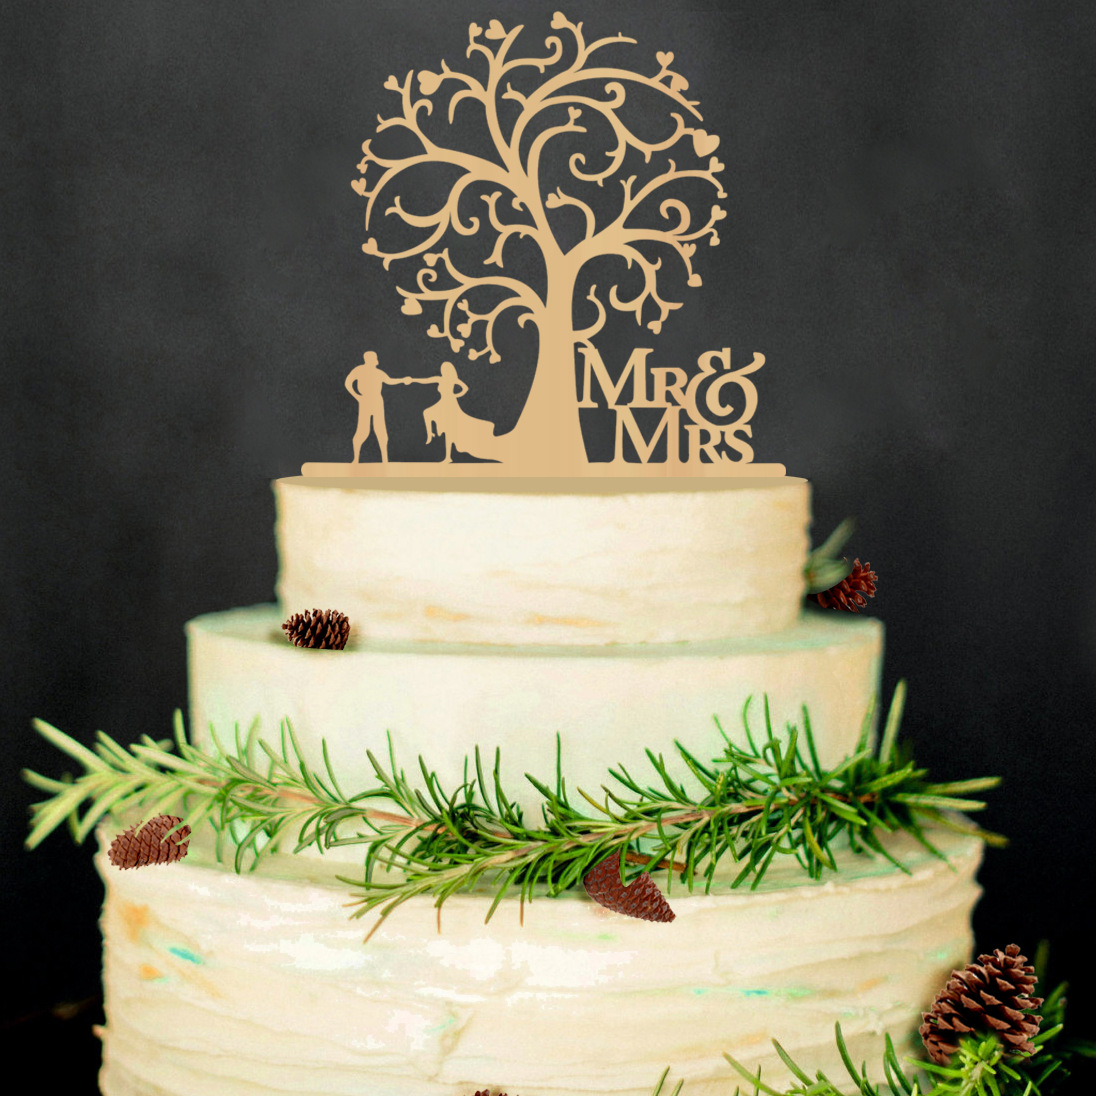 mr mrs wedding cake toppers wedding tree wood cake decorations funny bride and groom with. Black Bedroom Furniture Sets. Home Design Ideas